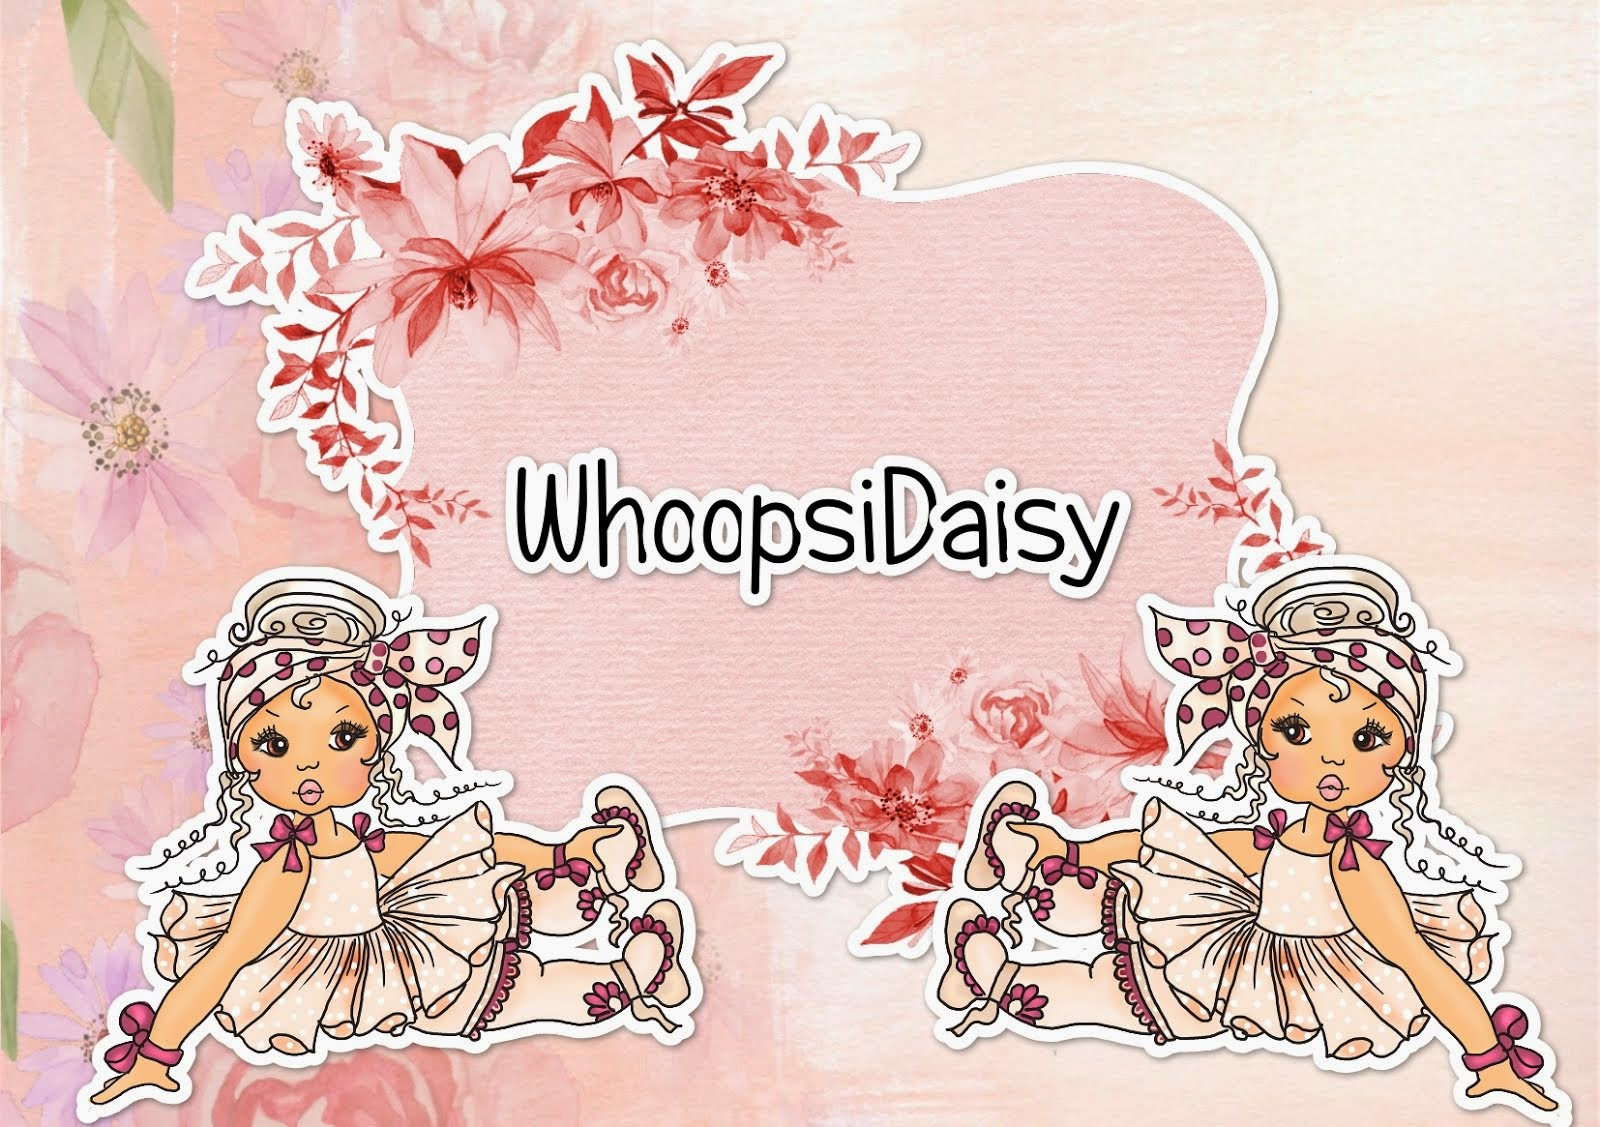 Whoopsidaisy Designs